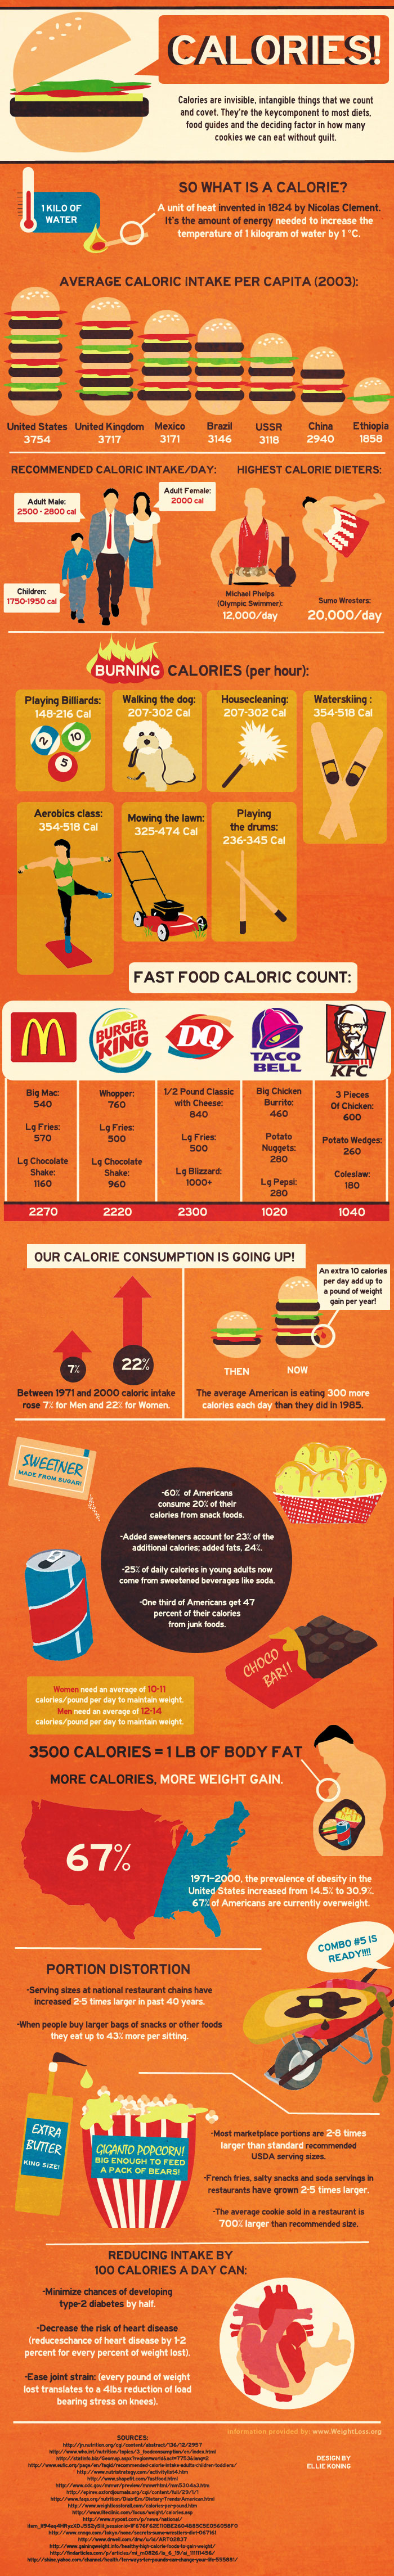 The Cost of Calories